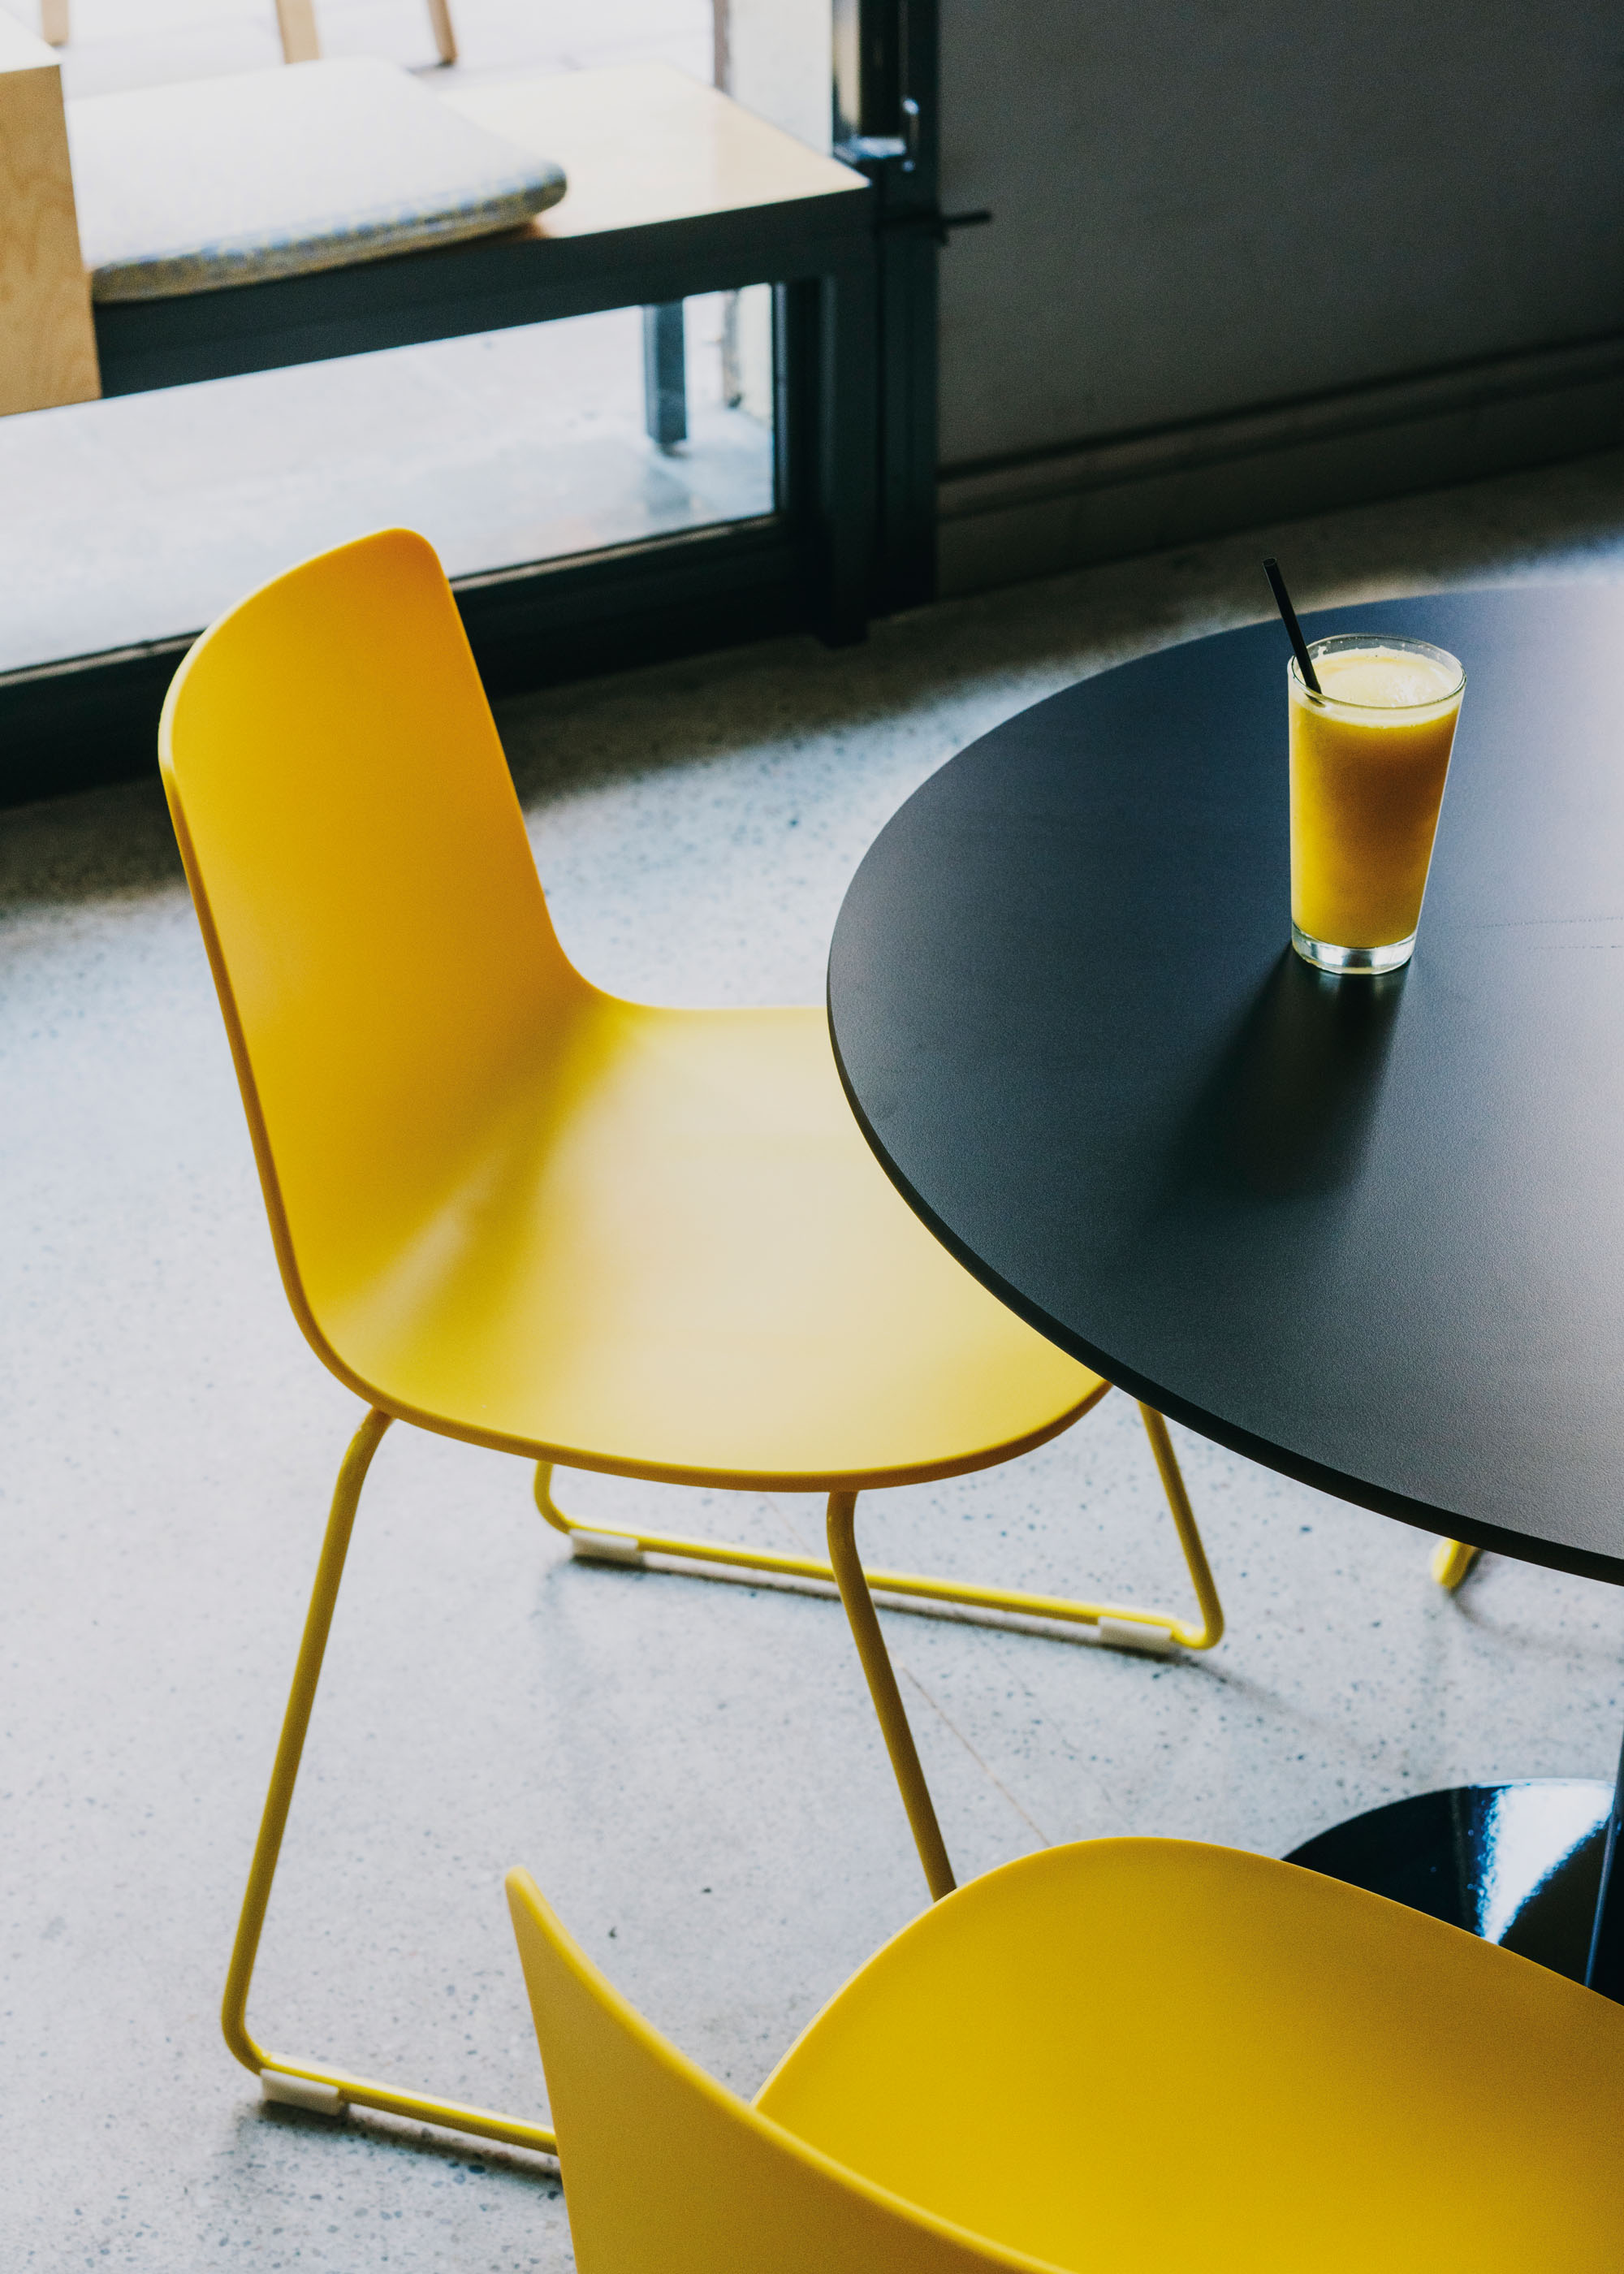 #furniture #enea #design #clase #chairs #barcelona #federal #cafe #yellow